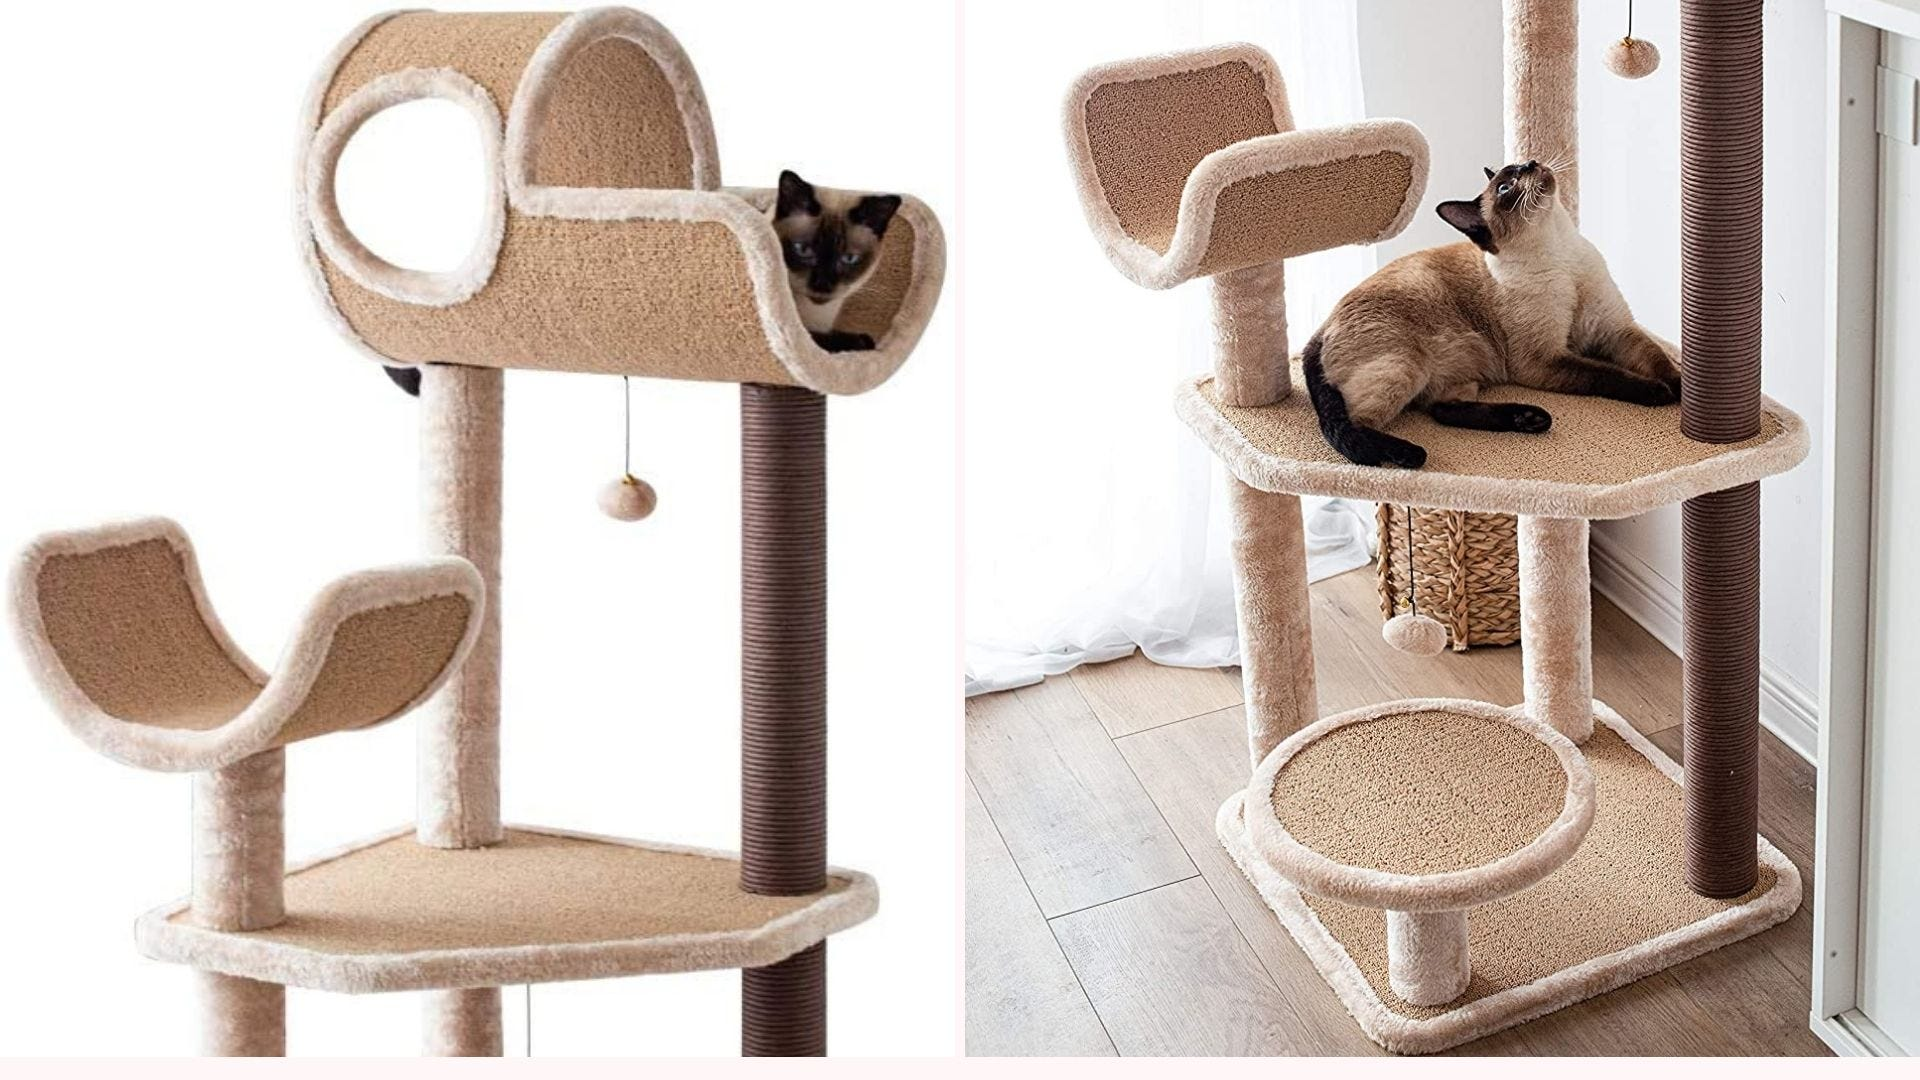 A Siamese cat on top of the Catry Activity Tree, and the same kitty lying on a lower level of the tree looking up at the dangling ball.